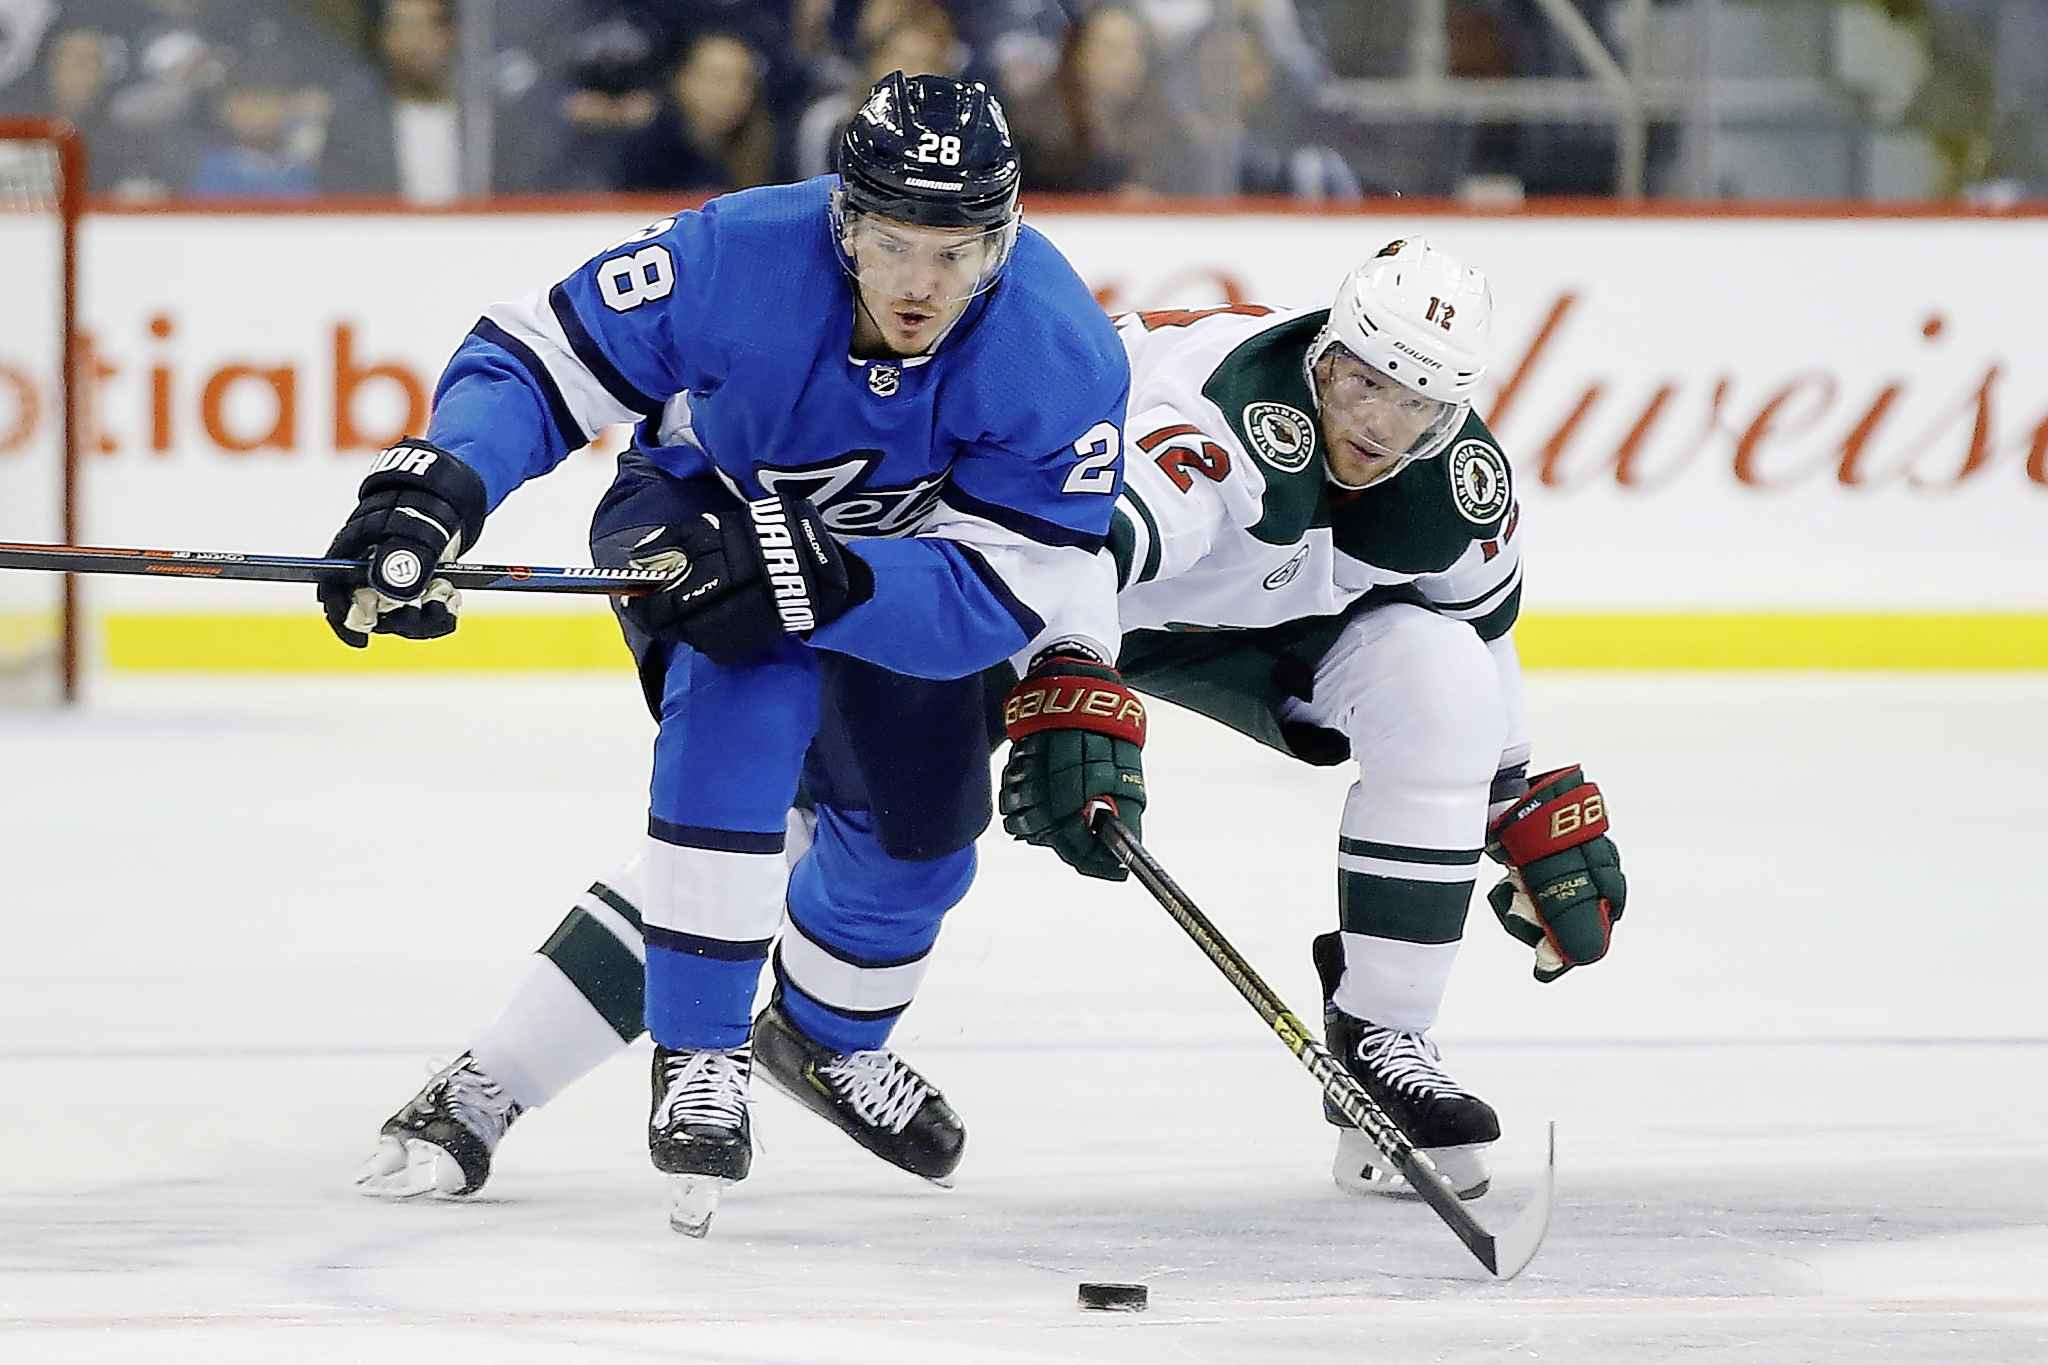 Minnesota Wild's Eric Staal defends against Winnipeg Jets' Jack Roslovic during their game in December. The Jets are anticipating more of the Wild's tight-checking style when the two clubs meet again Thursday in Minneapolis / St. Paul.